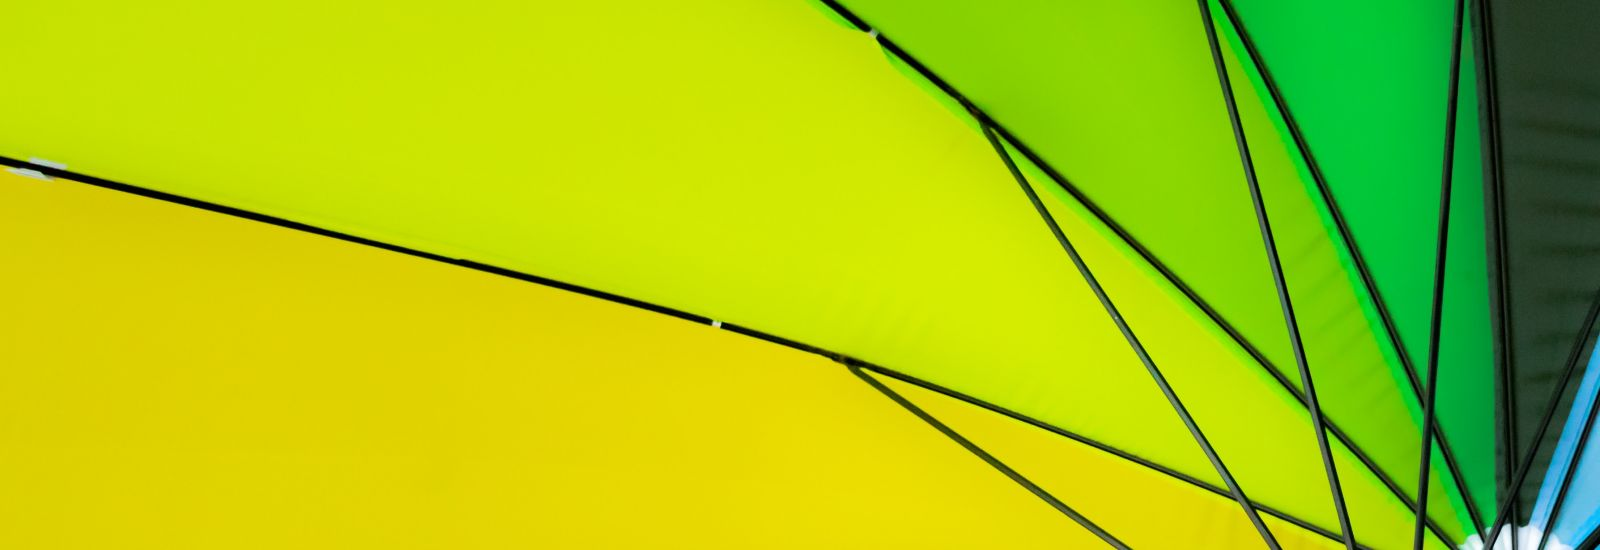 umbrella seen from below showing spokes and panels ranging from an orange through the spectrum to green